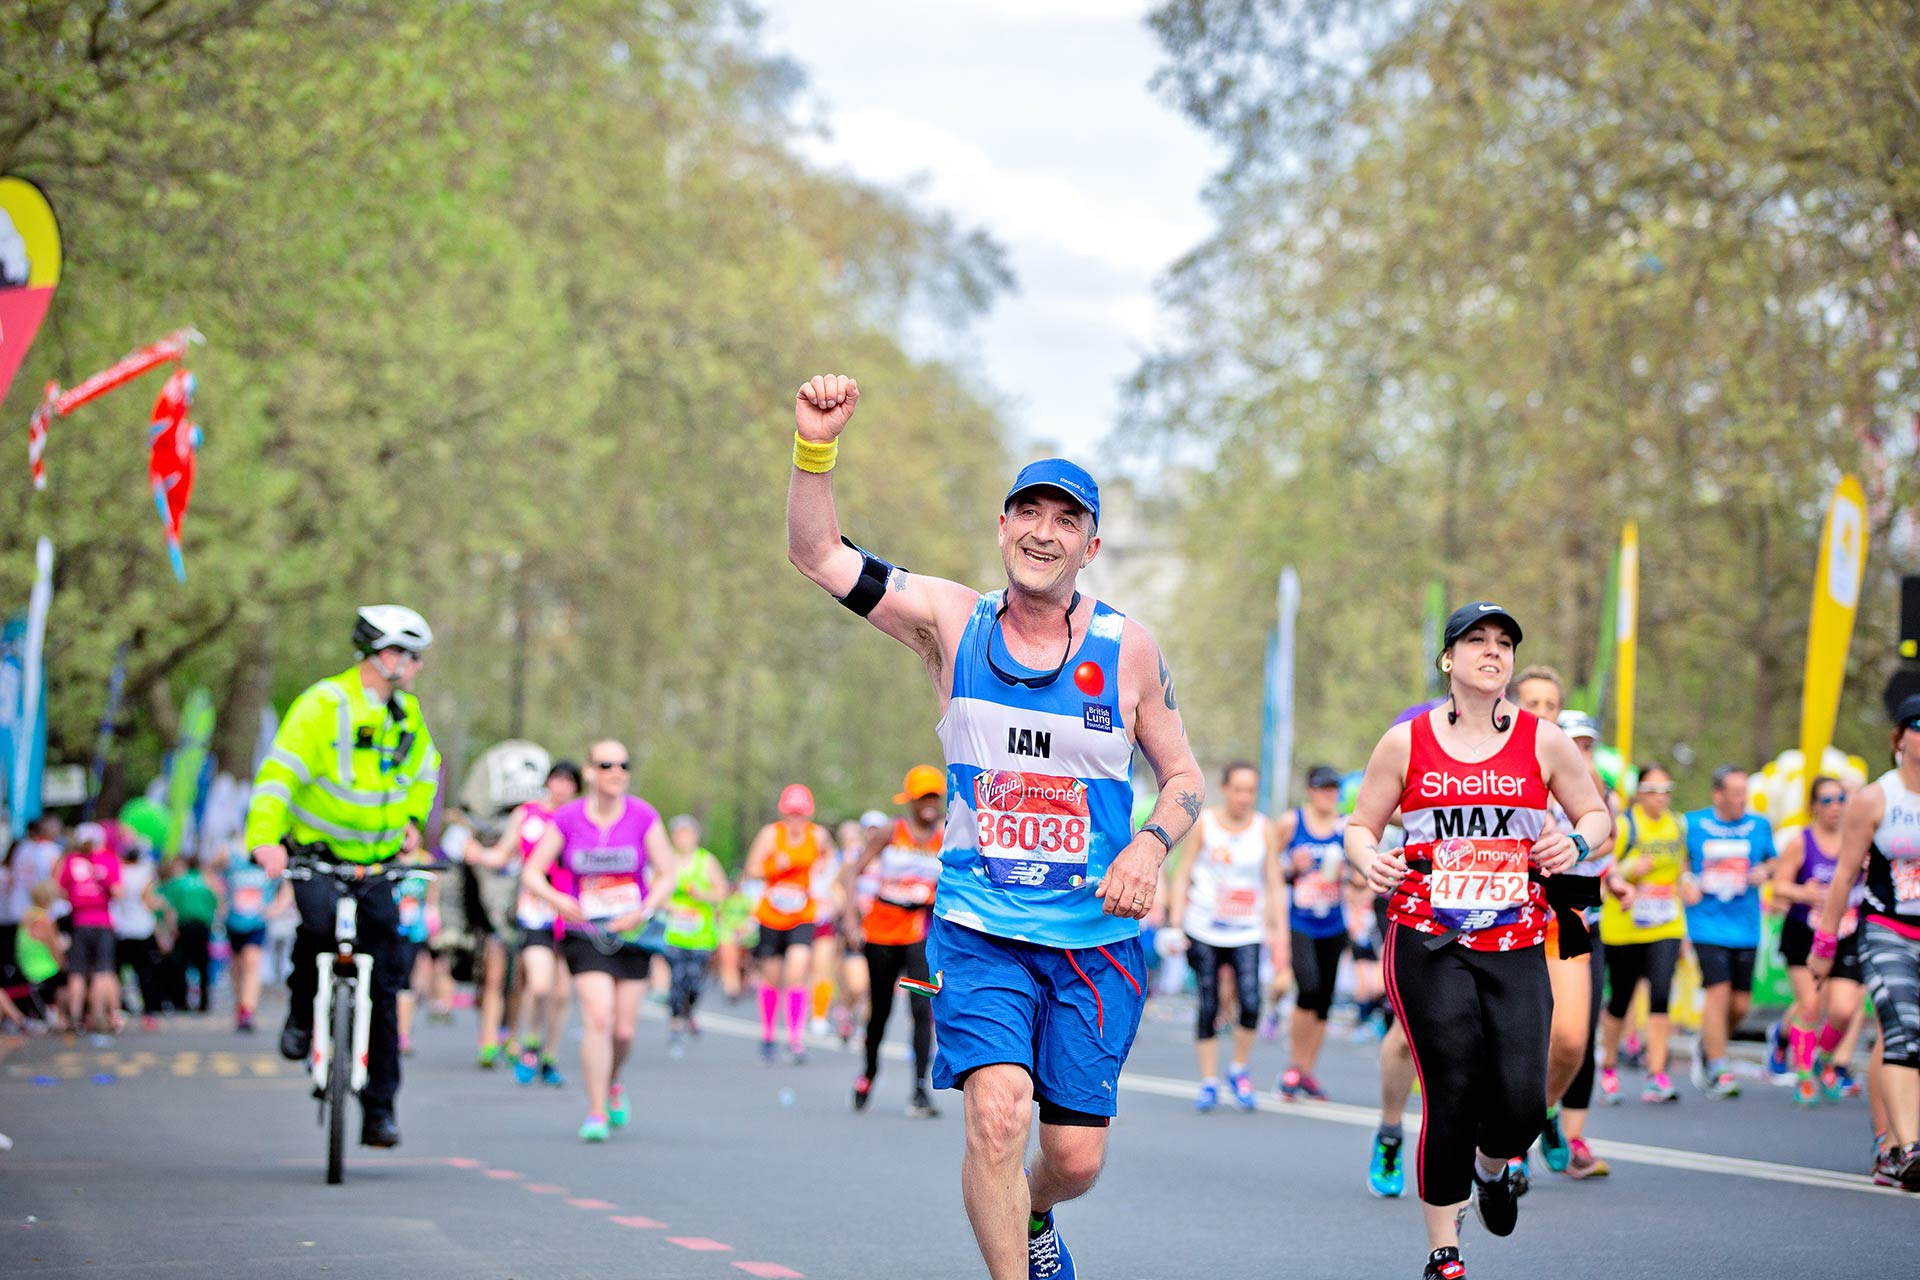 The-Virgin-London-Marathon-2018-with-British-Lung-Foundation-©-Brendan-Foster-Photography-368-Edit-80.jpg